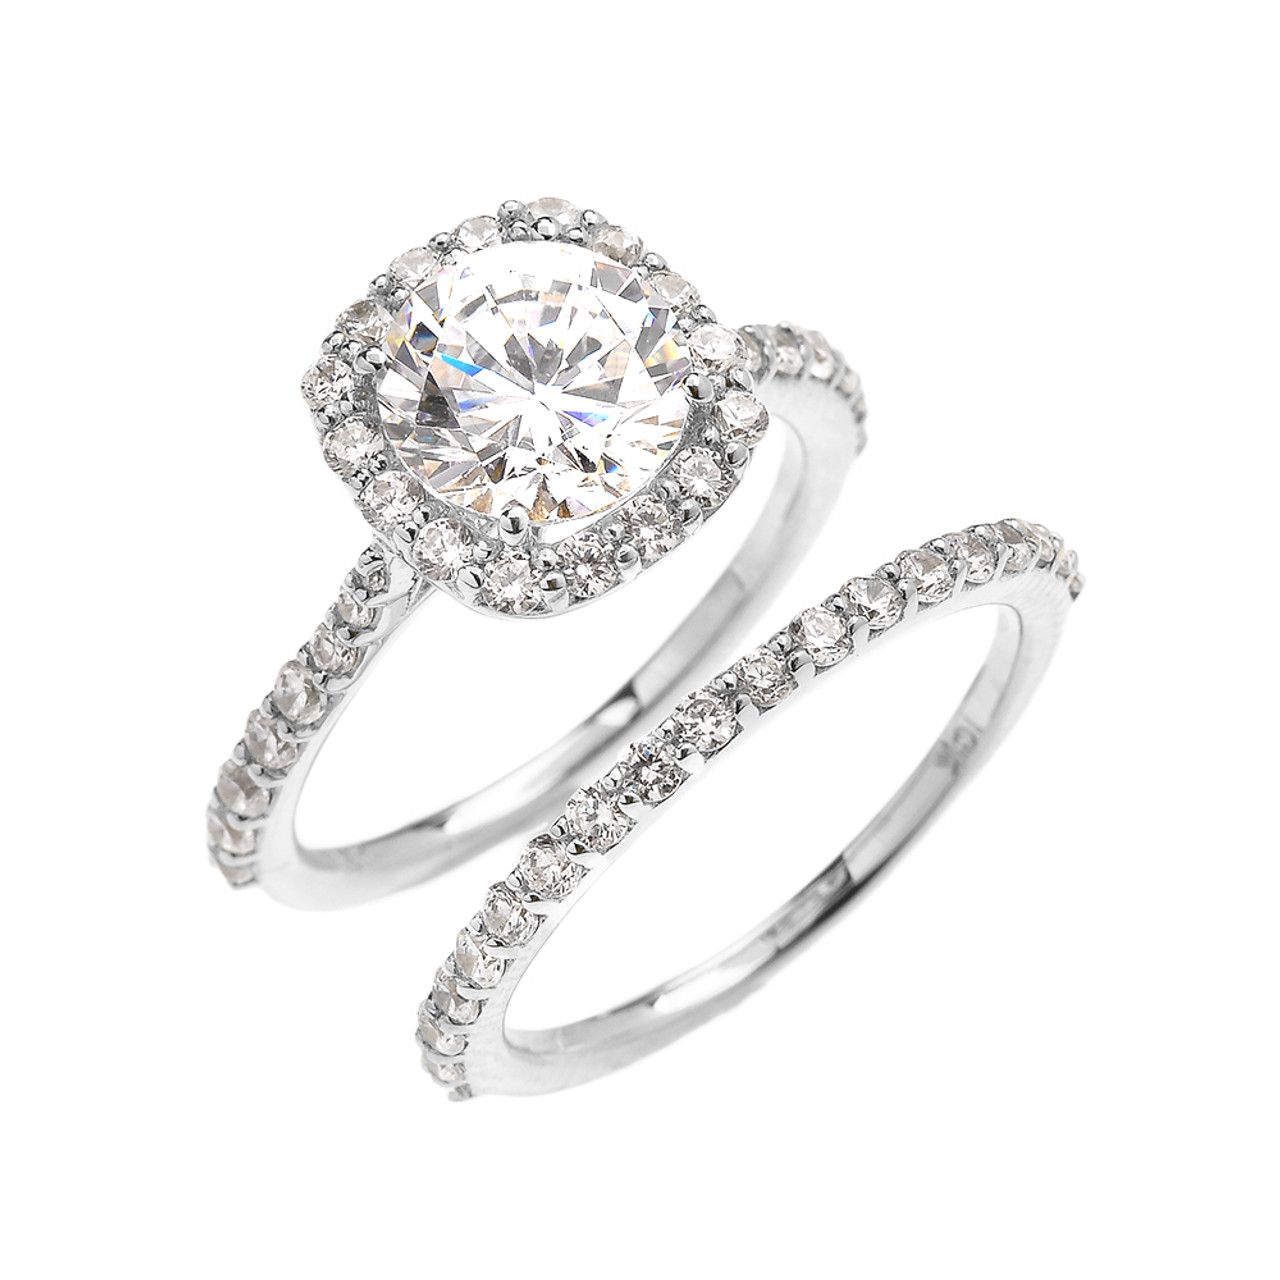 Beautiful Engagement Ring - Dainty 3 Carat Halo CZ Ring Set in White Gold a660138c37